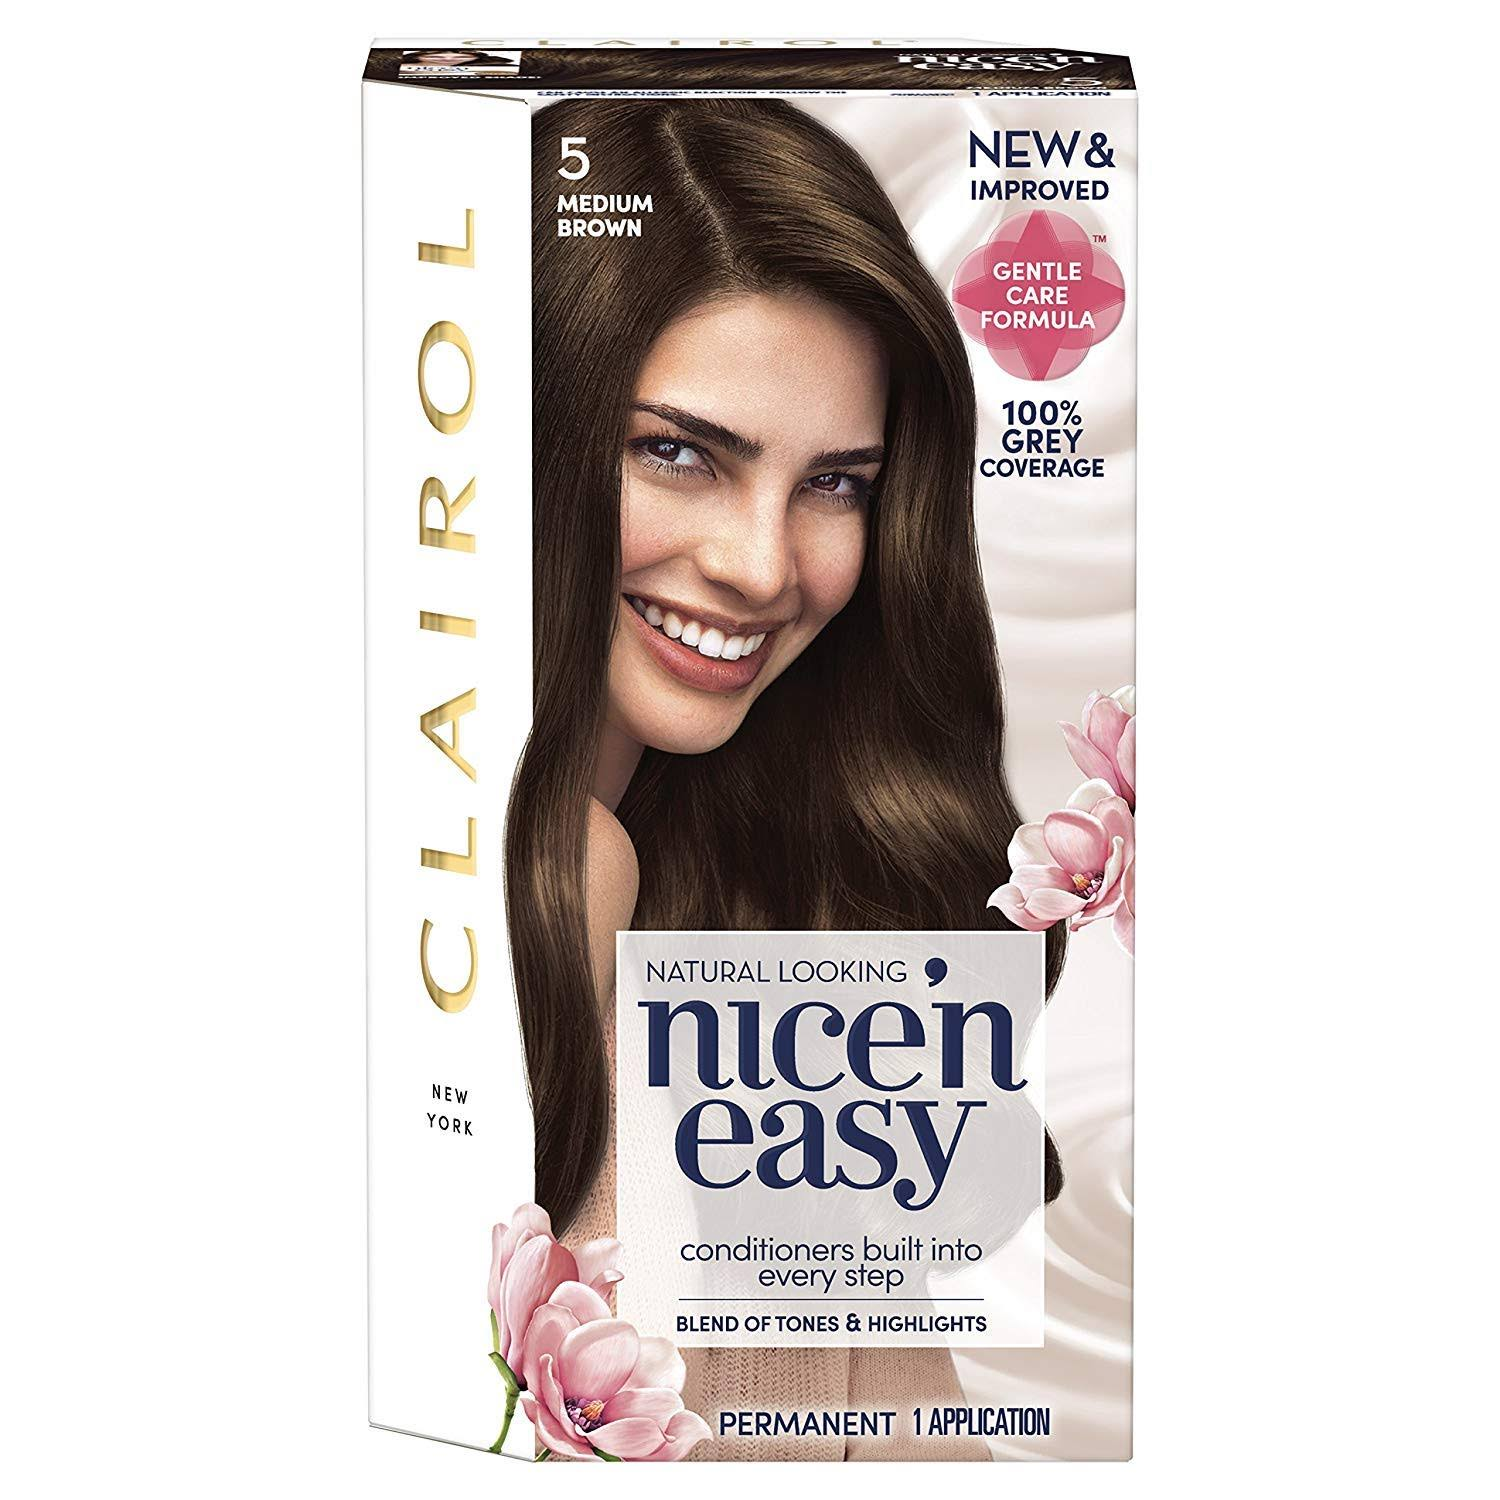 Clairol Nice'n Easy Permanent Hair Dye - 5 Medium Brown